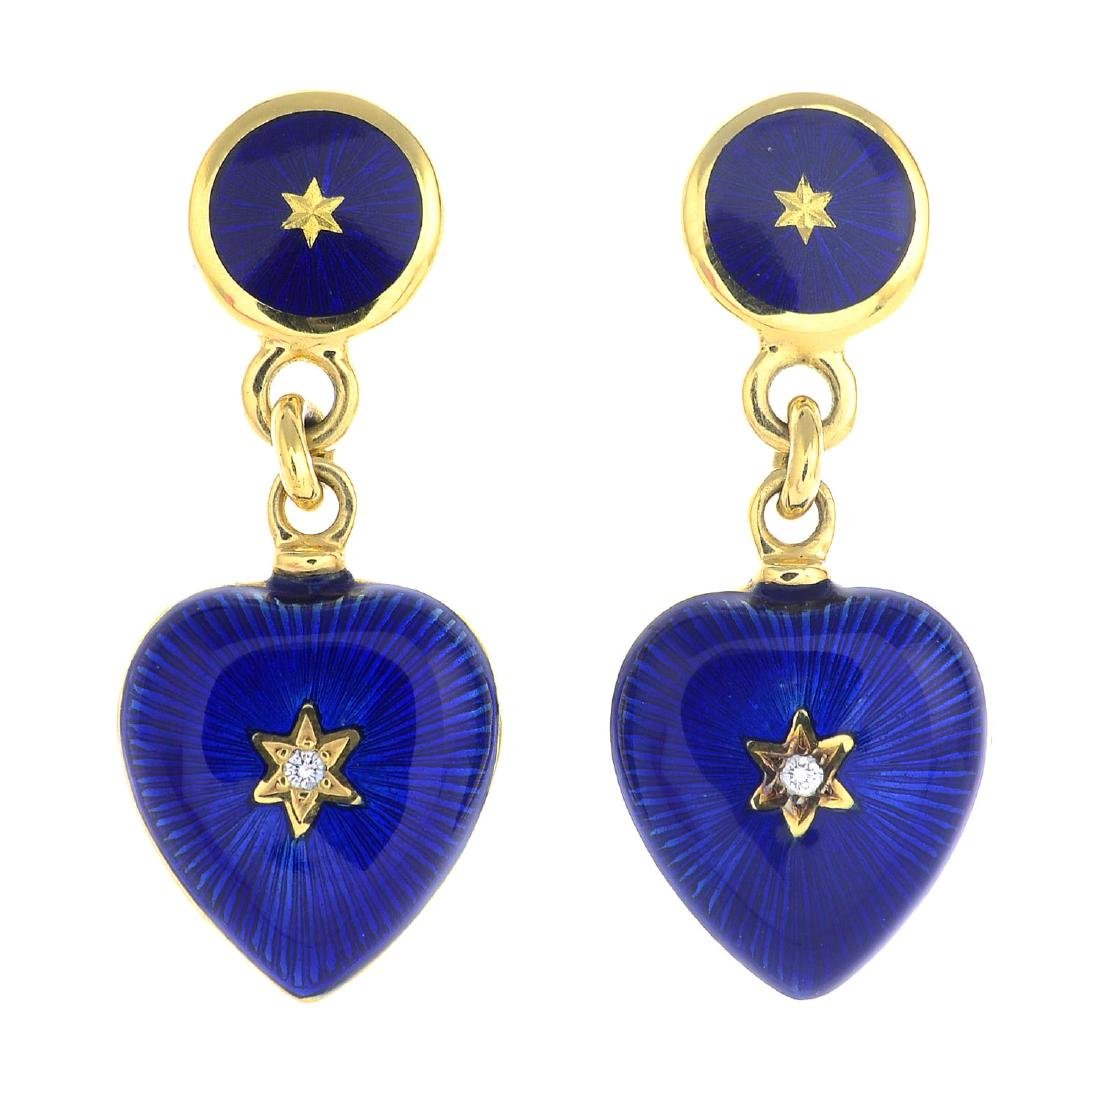 FABERGE - a pair of enamel and diamond earrings. Each